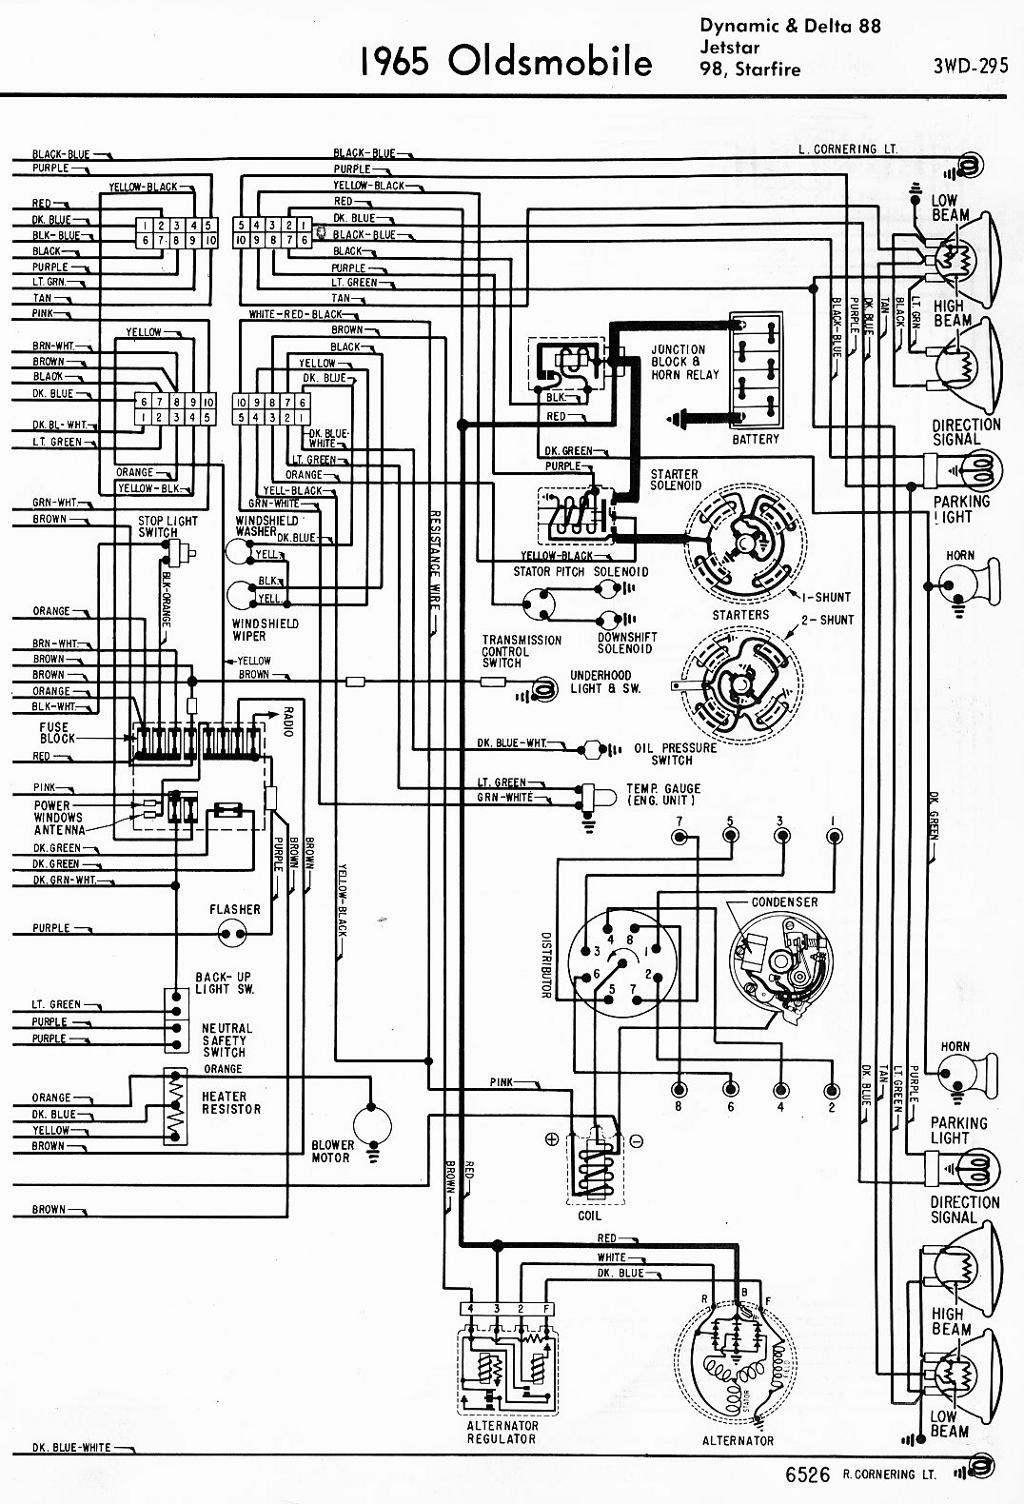 Wiring Diagram 1986 Chevy Truck 4 3 - Electrical Work Wiring Diagram •